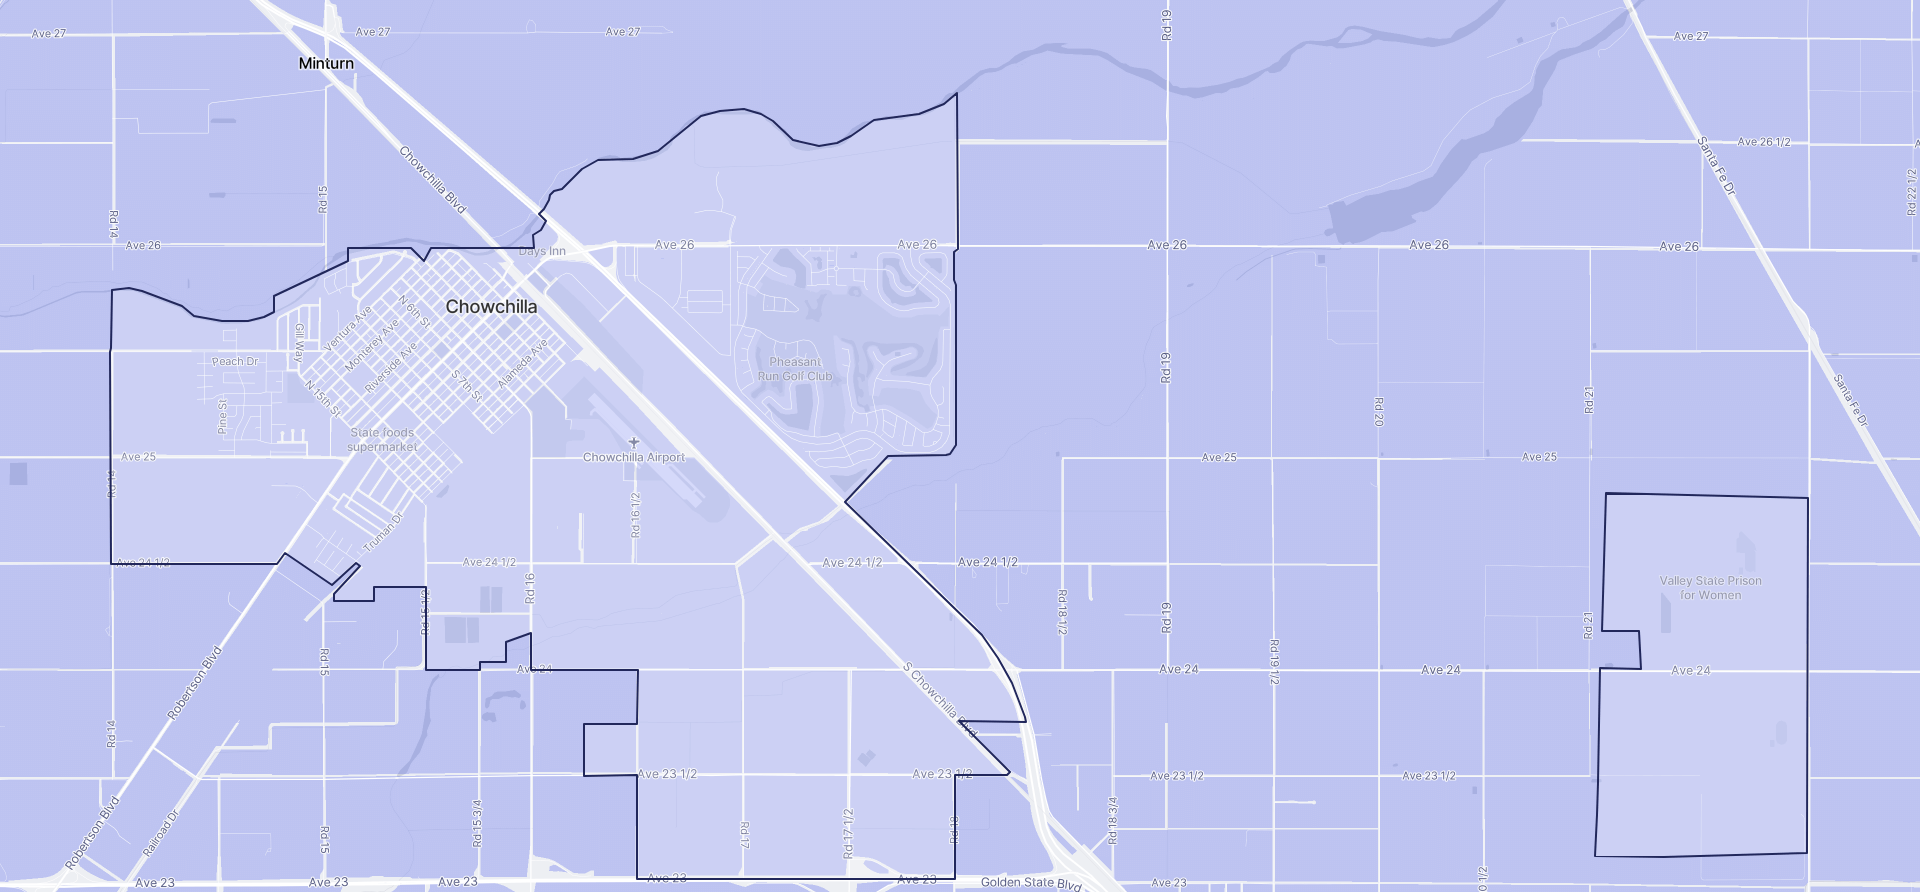 Image of Chowchilla boundaries on a map.